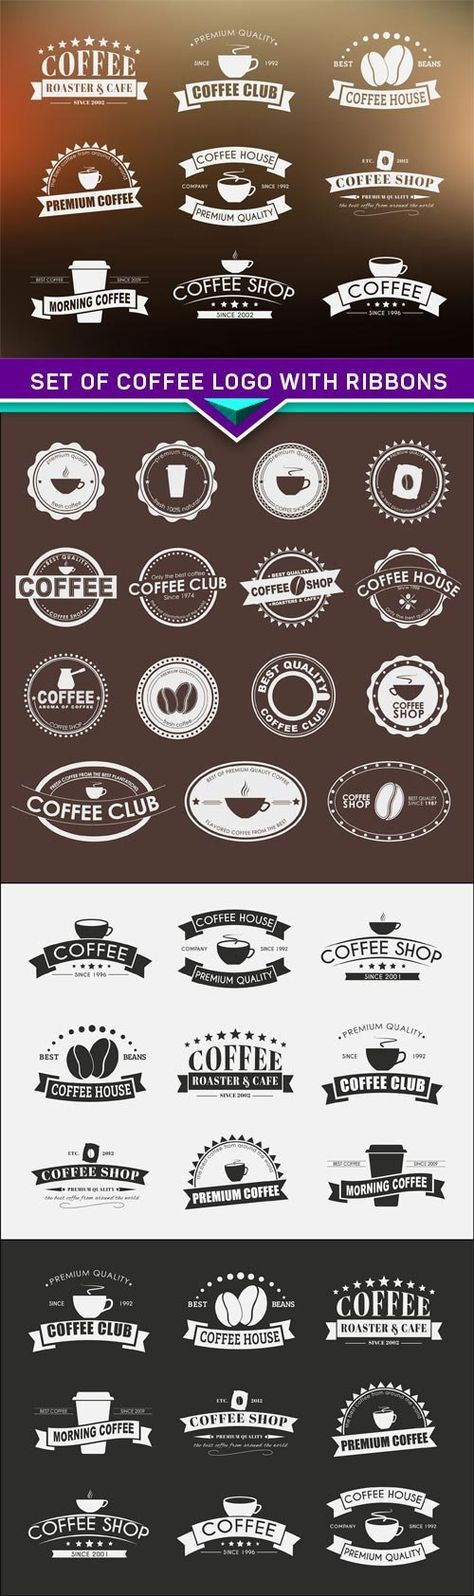 Set of coffee logo with ribbons 4X EPS